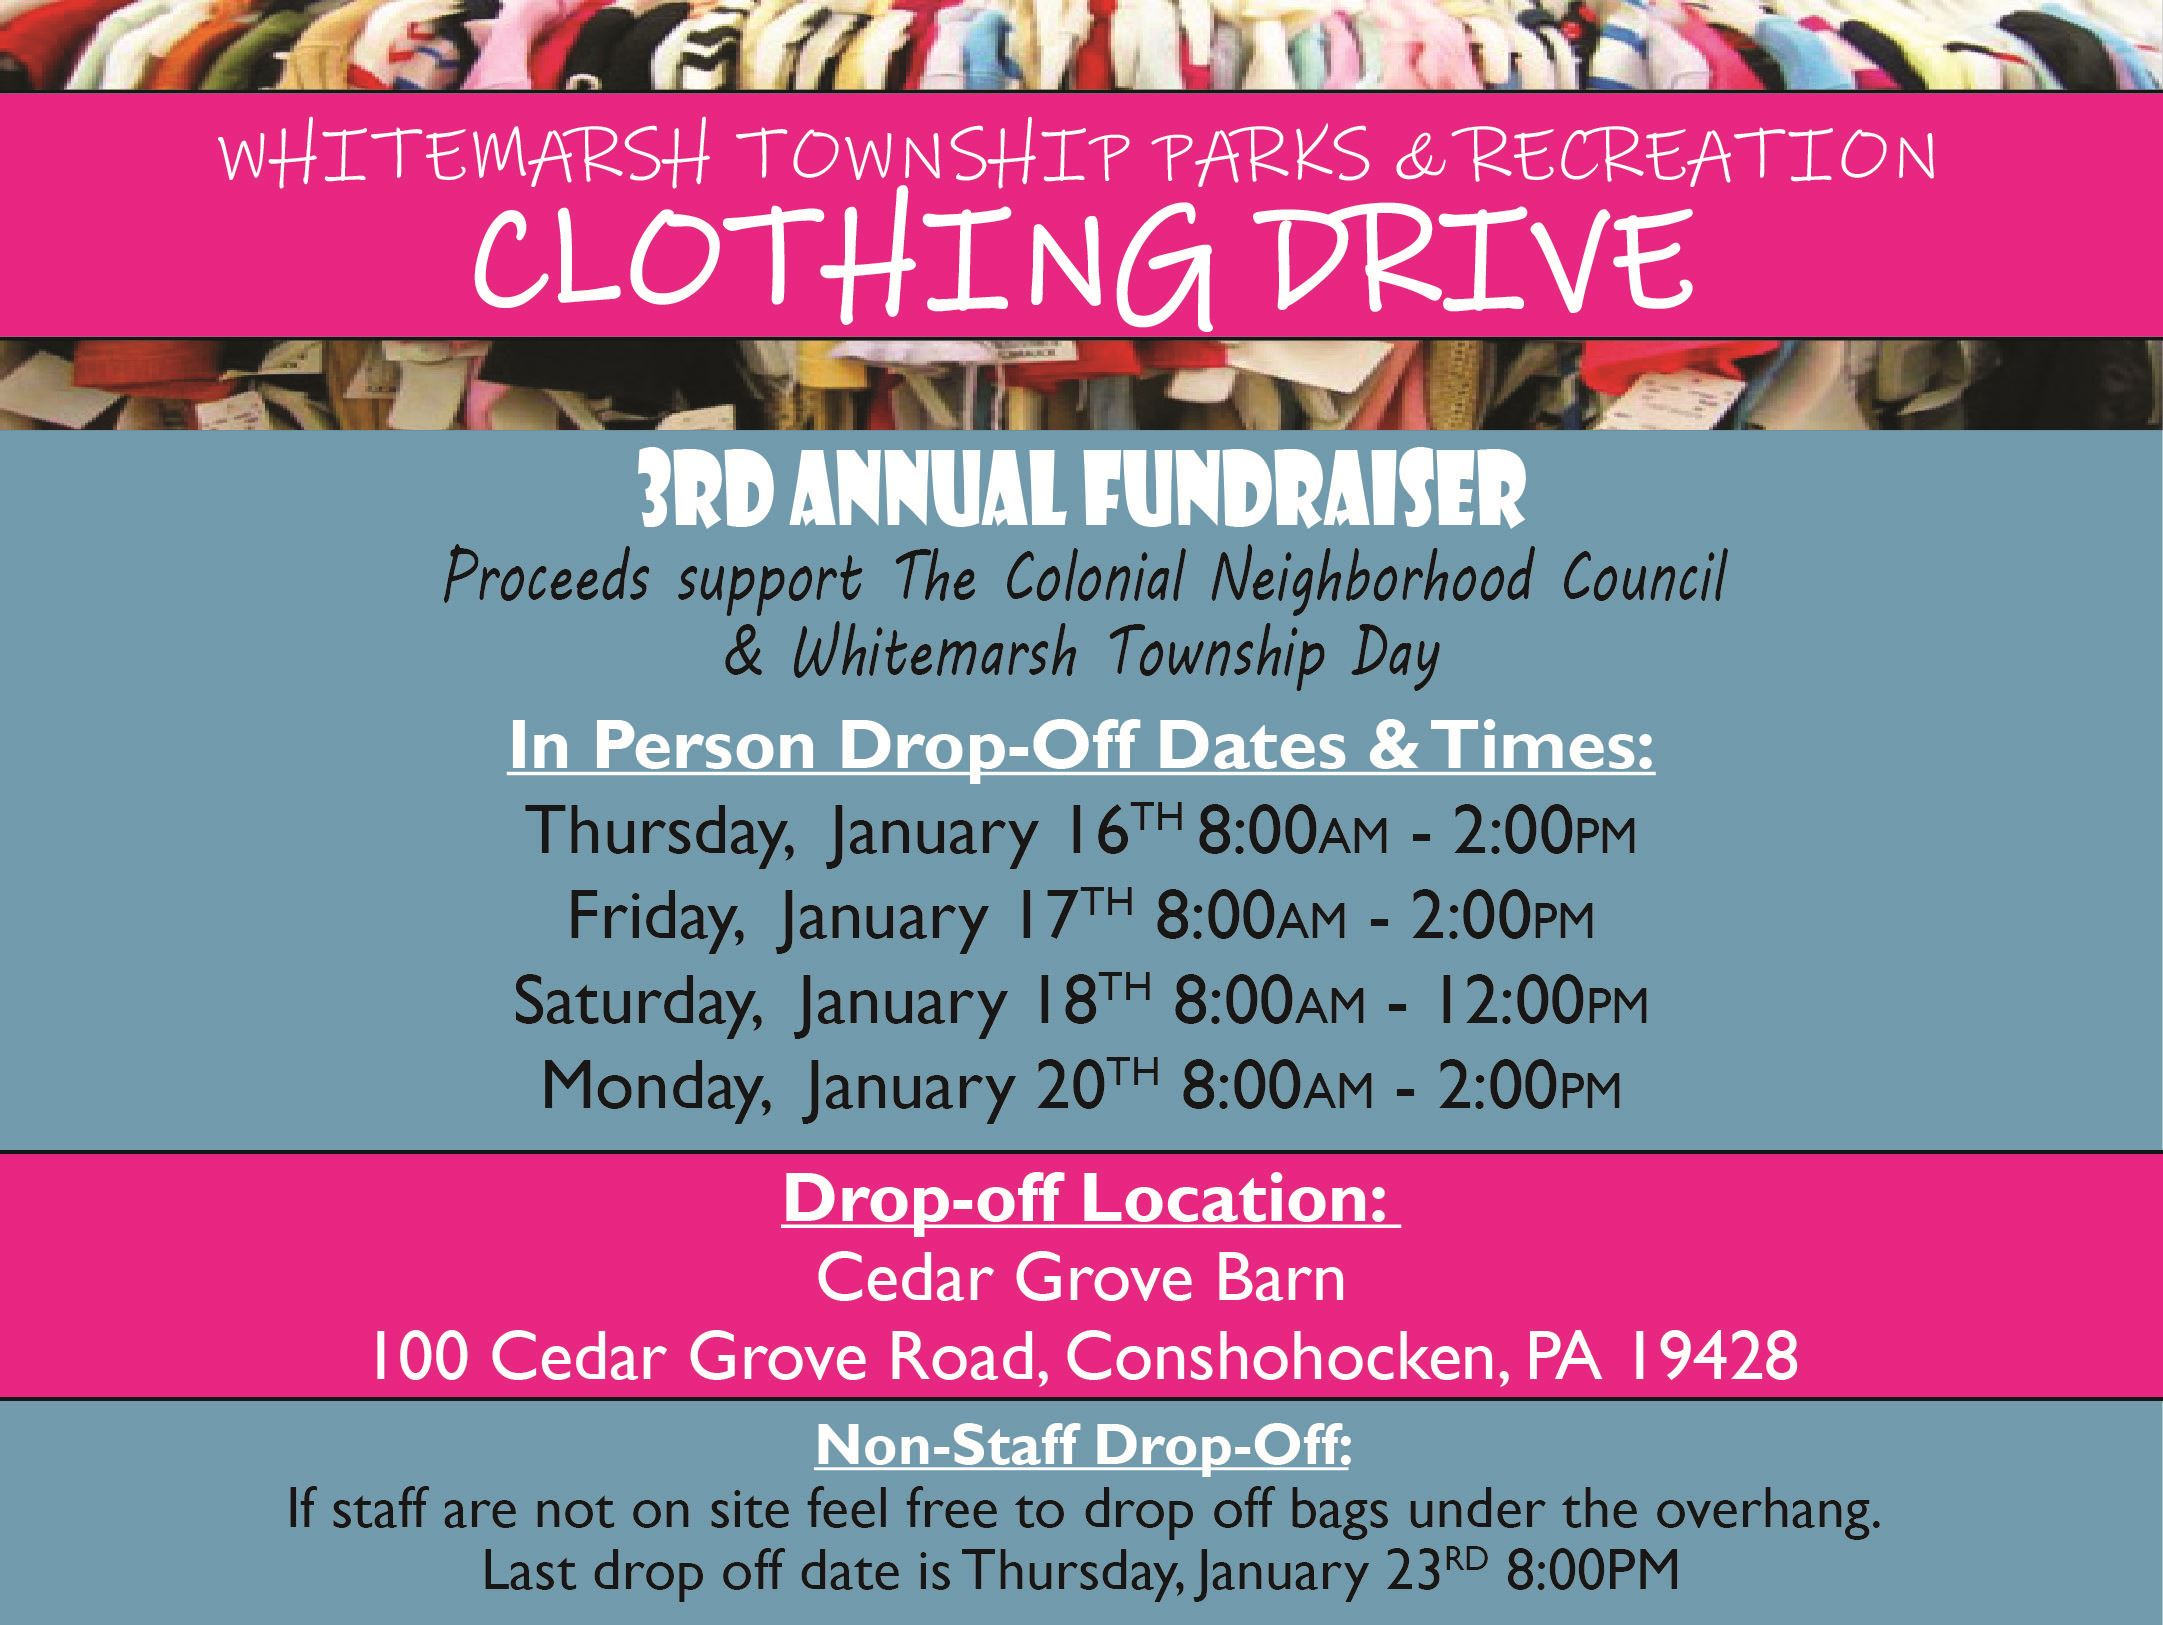 2020 Clothing Drive Fundraiser Event Flyer Thumbnail